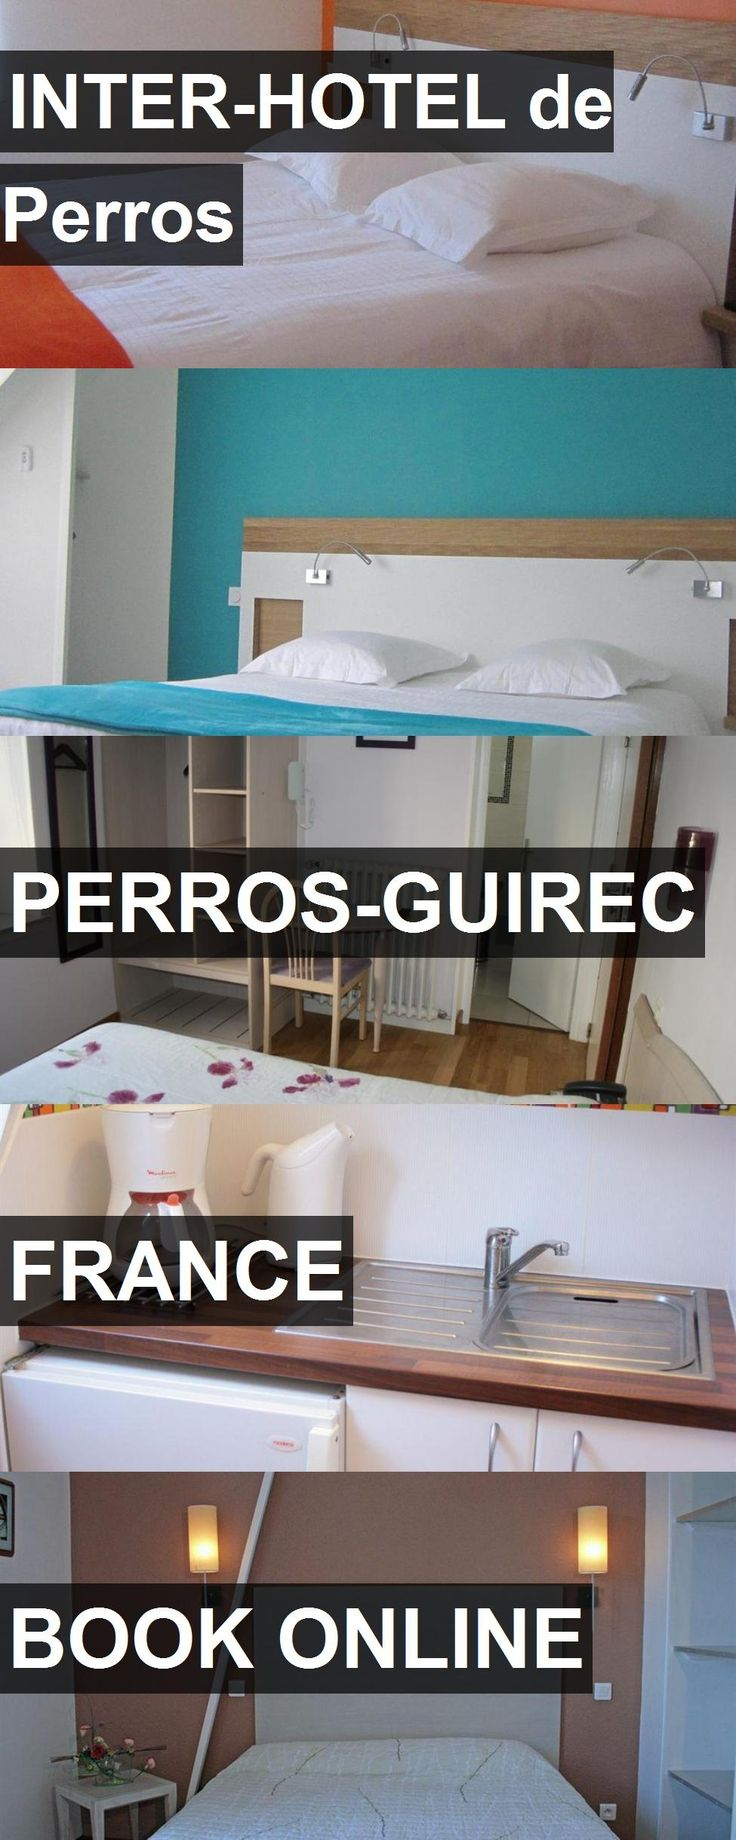 INTER-HOTEL de Perros in Perros-Guirec, France. For more information, photos, reviews and best prices please follow the link. #France #Perros-Guirec #travel #vacation #hotel